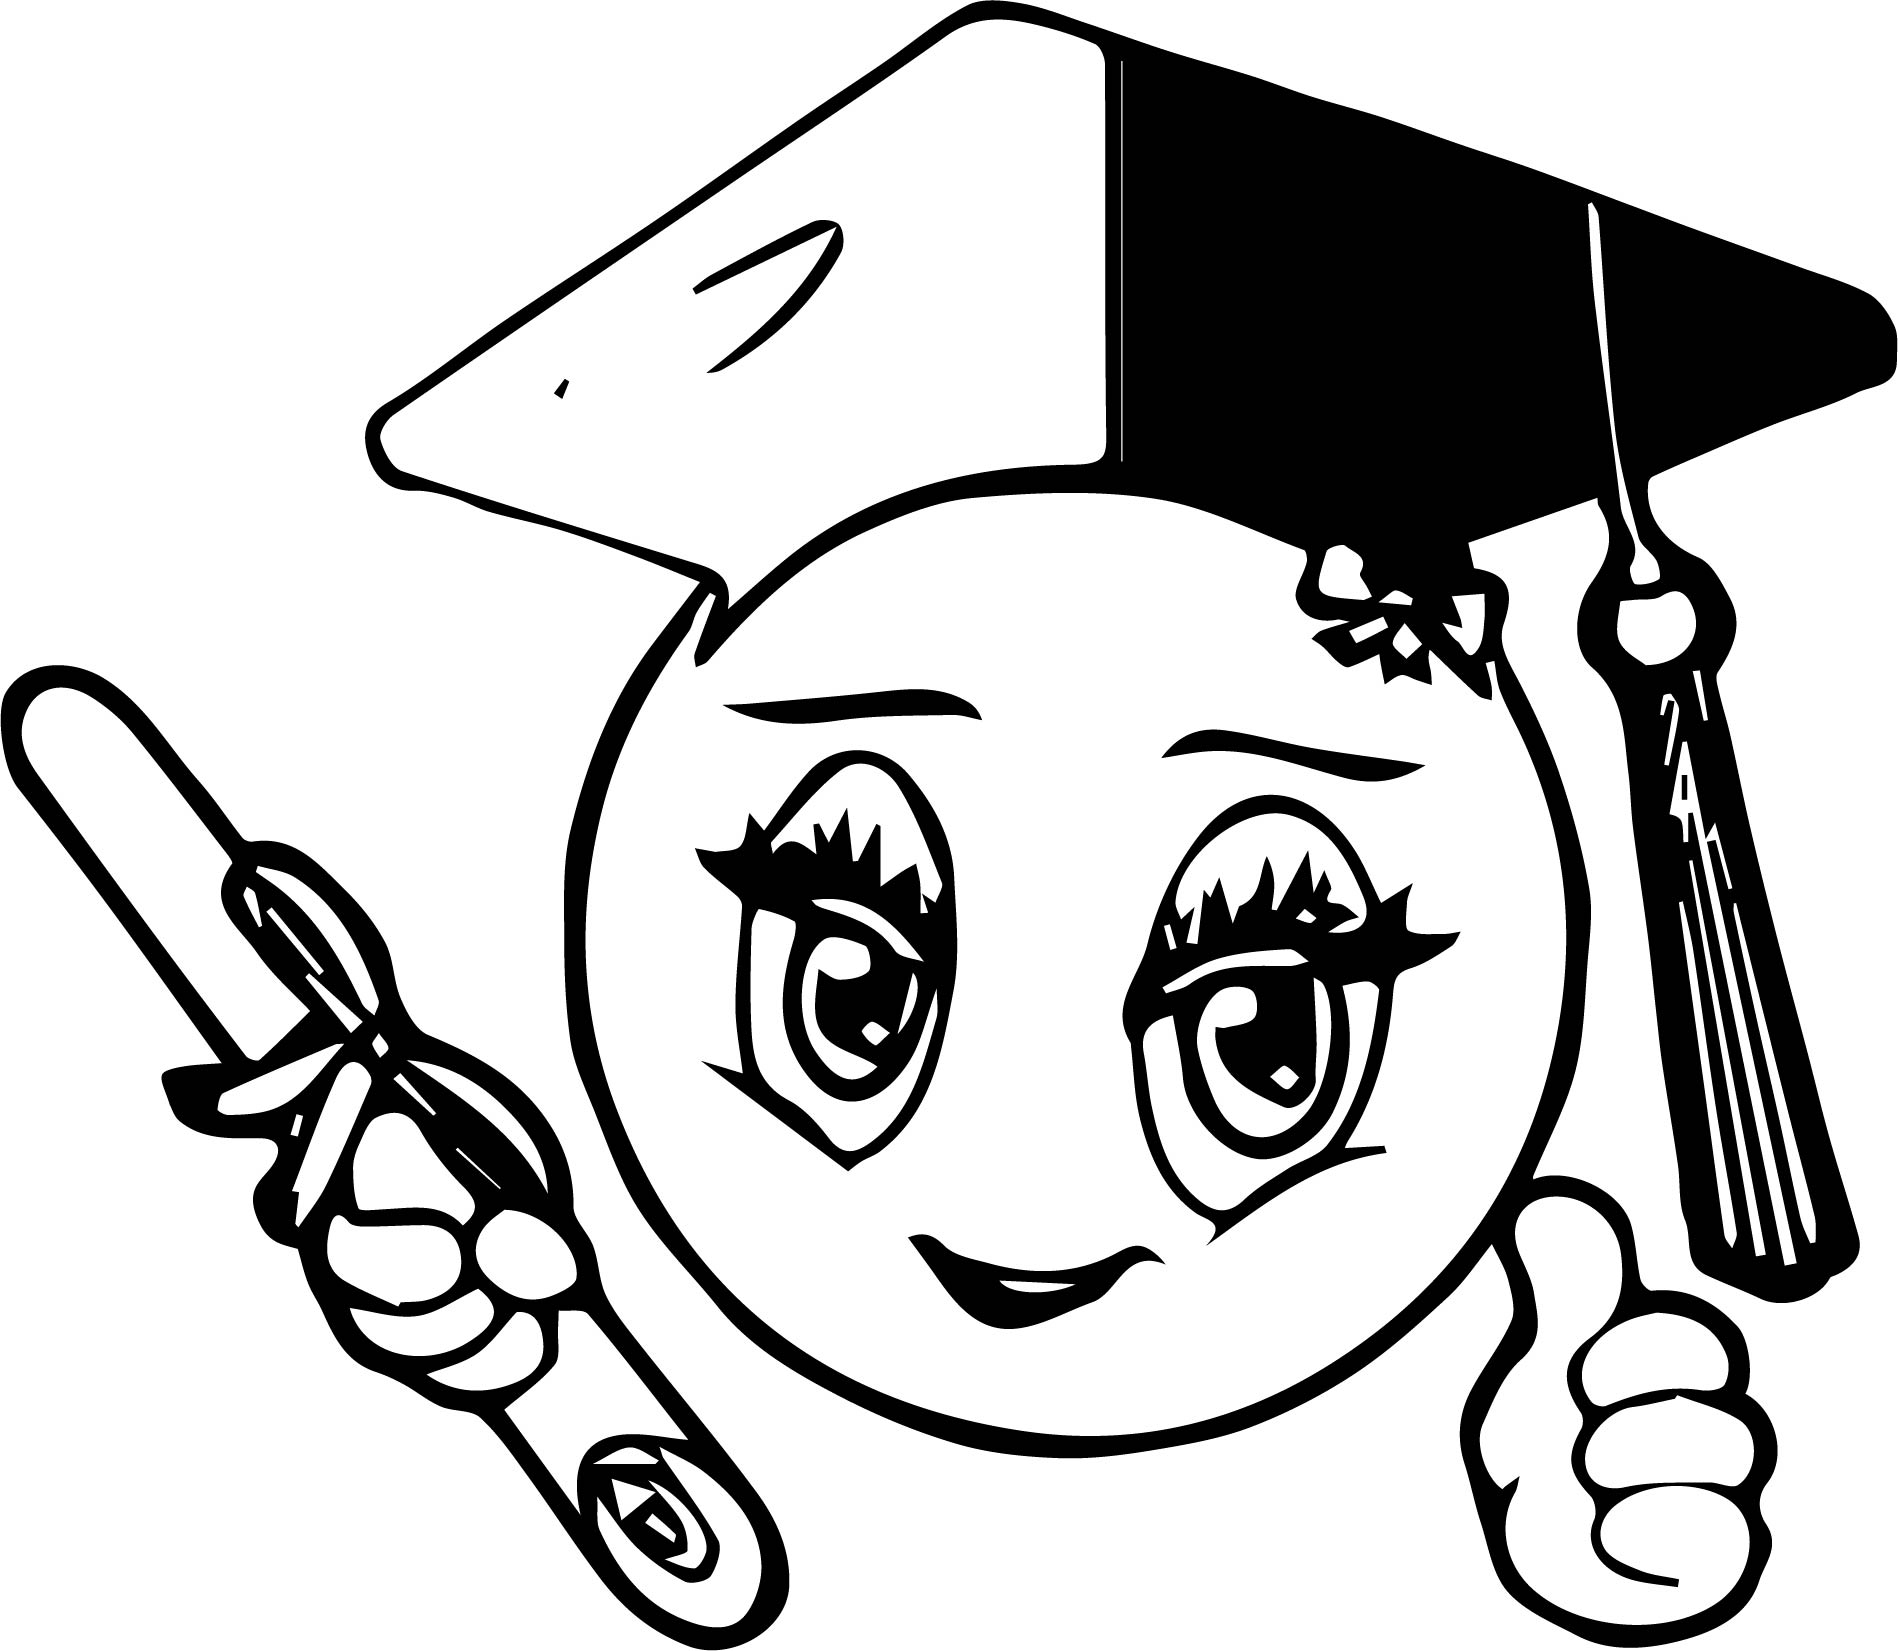 graduation dream smiley emoticon face coloring page